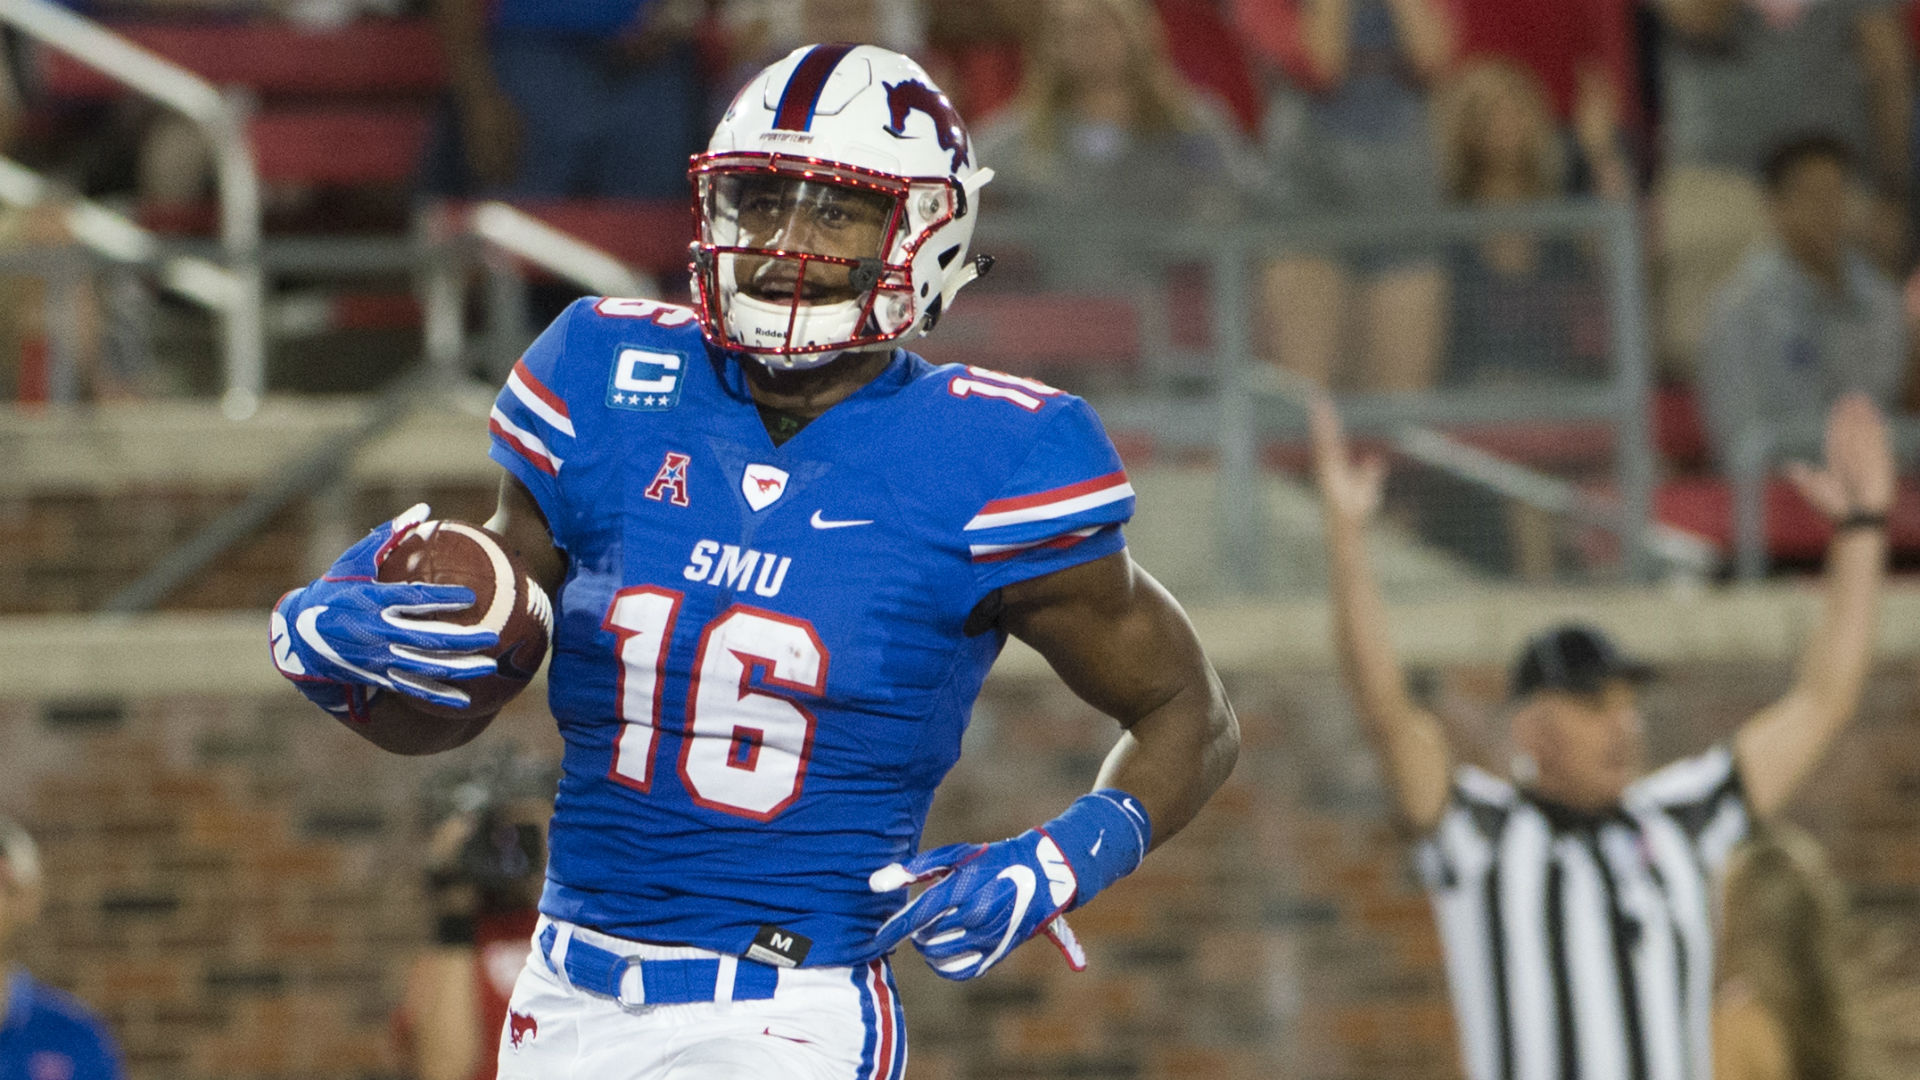 SMU's Courtland Sutton could be first WR drafted in 2018, NFL GM says